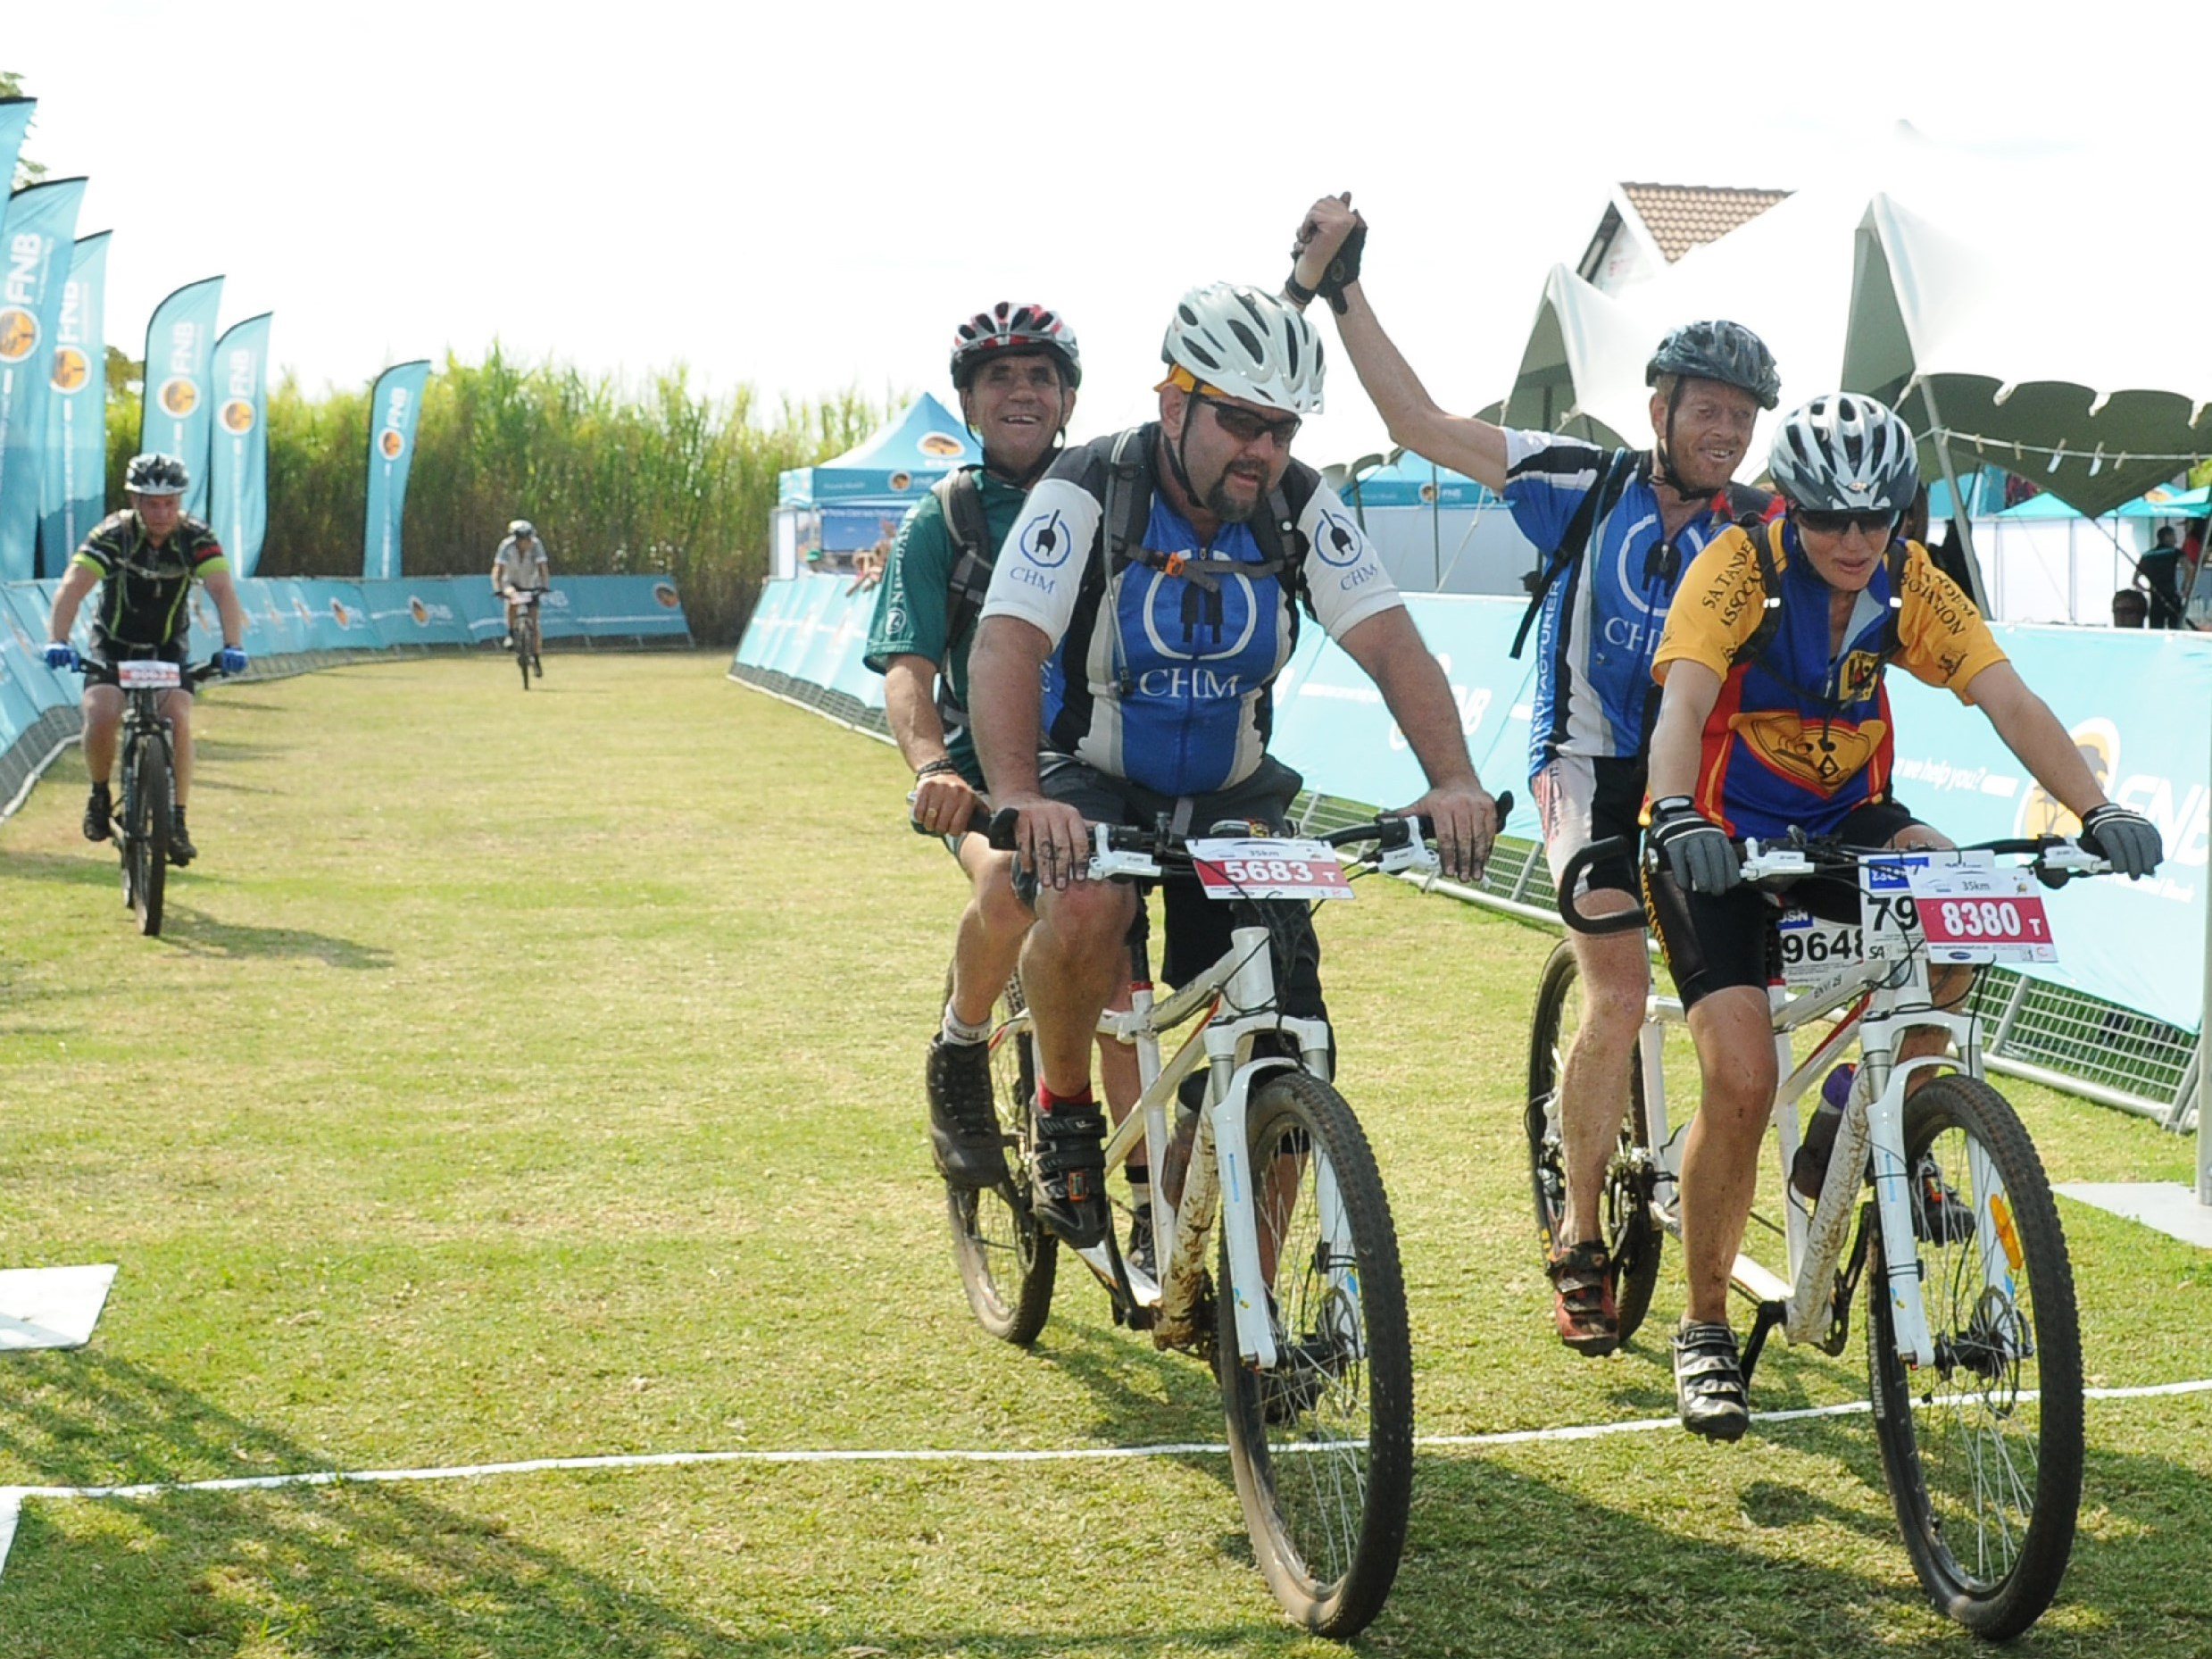 Two eager mountain bikers, Dan Manders and Morne Swanepoel will not allow their competitive spirit to be dampened by their inability to see.  A true inspiration, both riders will attempt to conquer the revered 70km FNB Magalies Monster Mountain Bike Classic on Saturday, 03 June 2017.  Seen here (front left) Theo Coetzee, (back left) Dan Manders, (front right) Cecile Coetzee and (back right) Morne Swanepoel at the 35km FNB Magalies Monster Mountain Bike Classic in 2016.  Photo Credit:  Jetline Action Photo